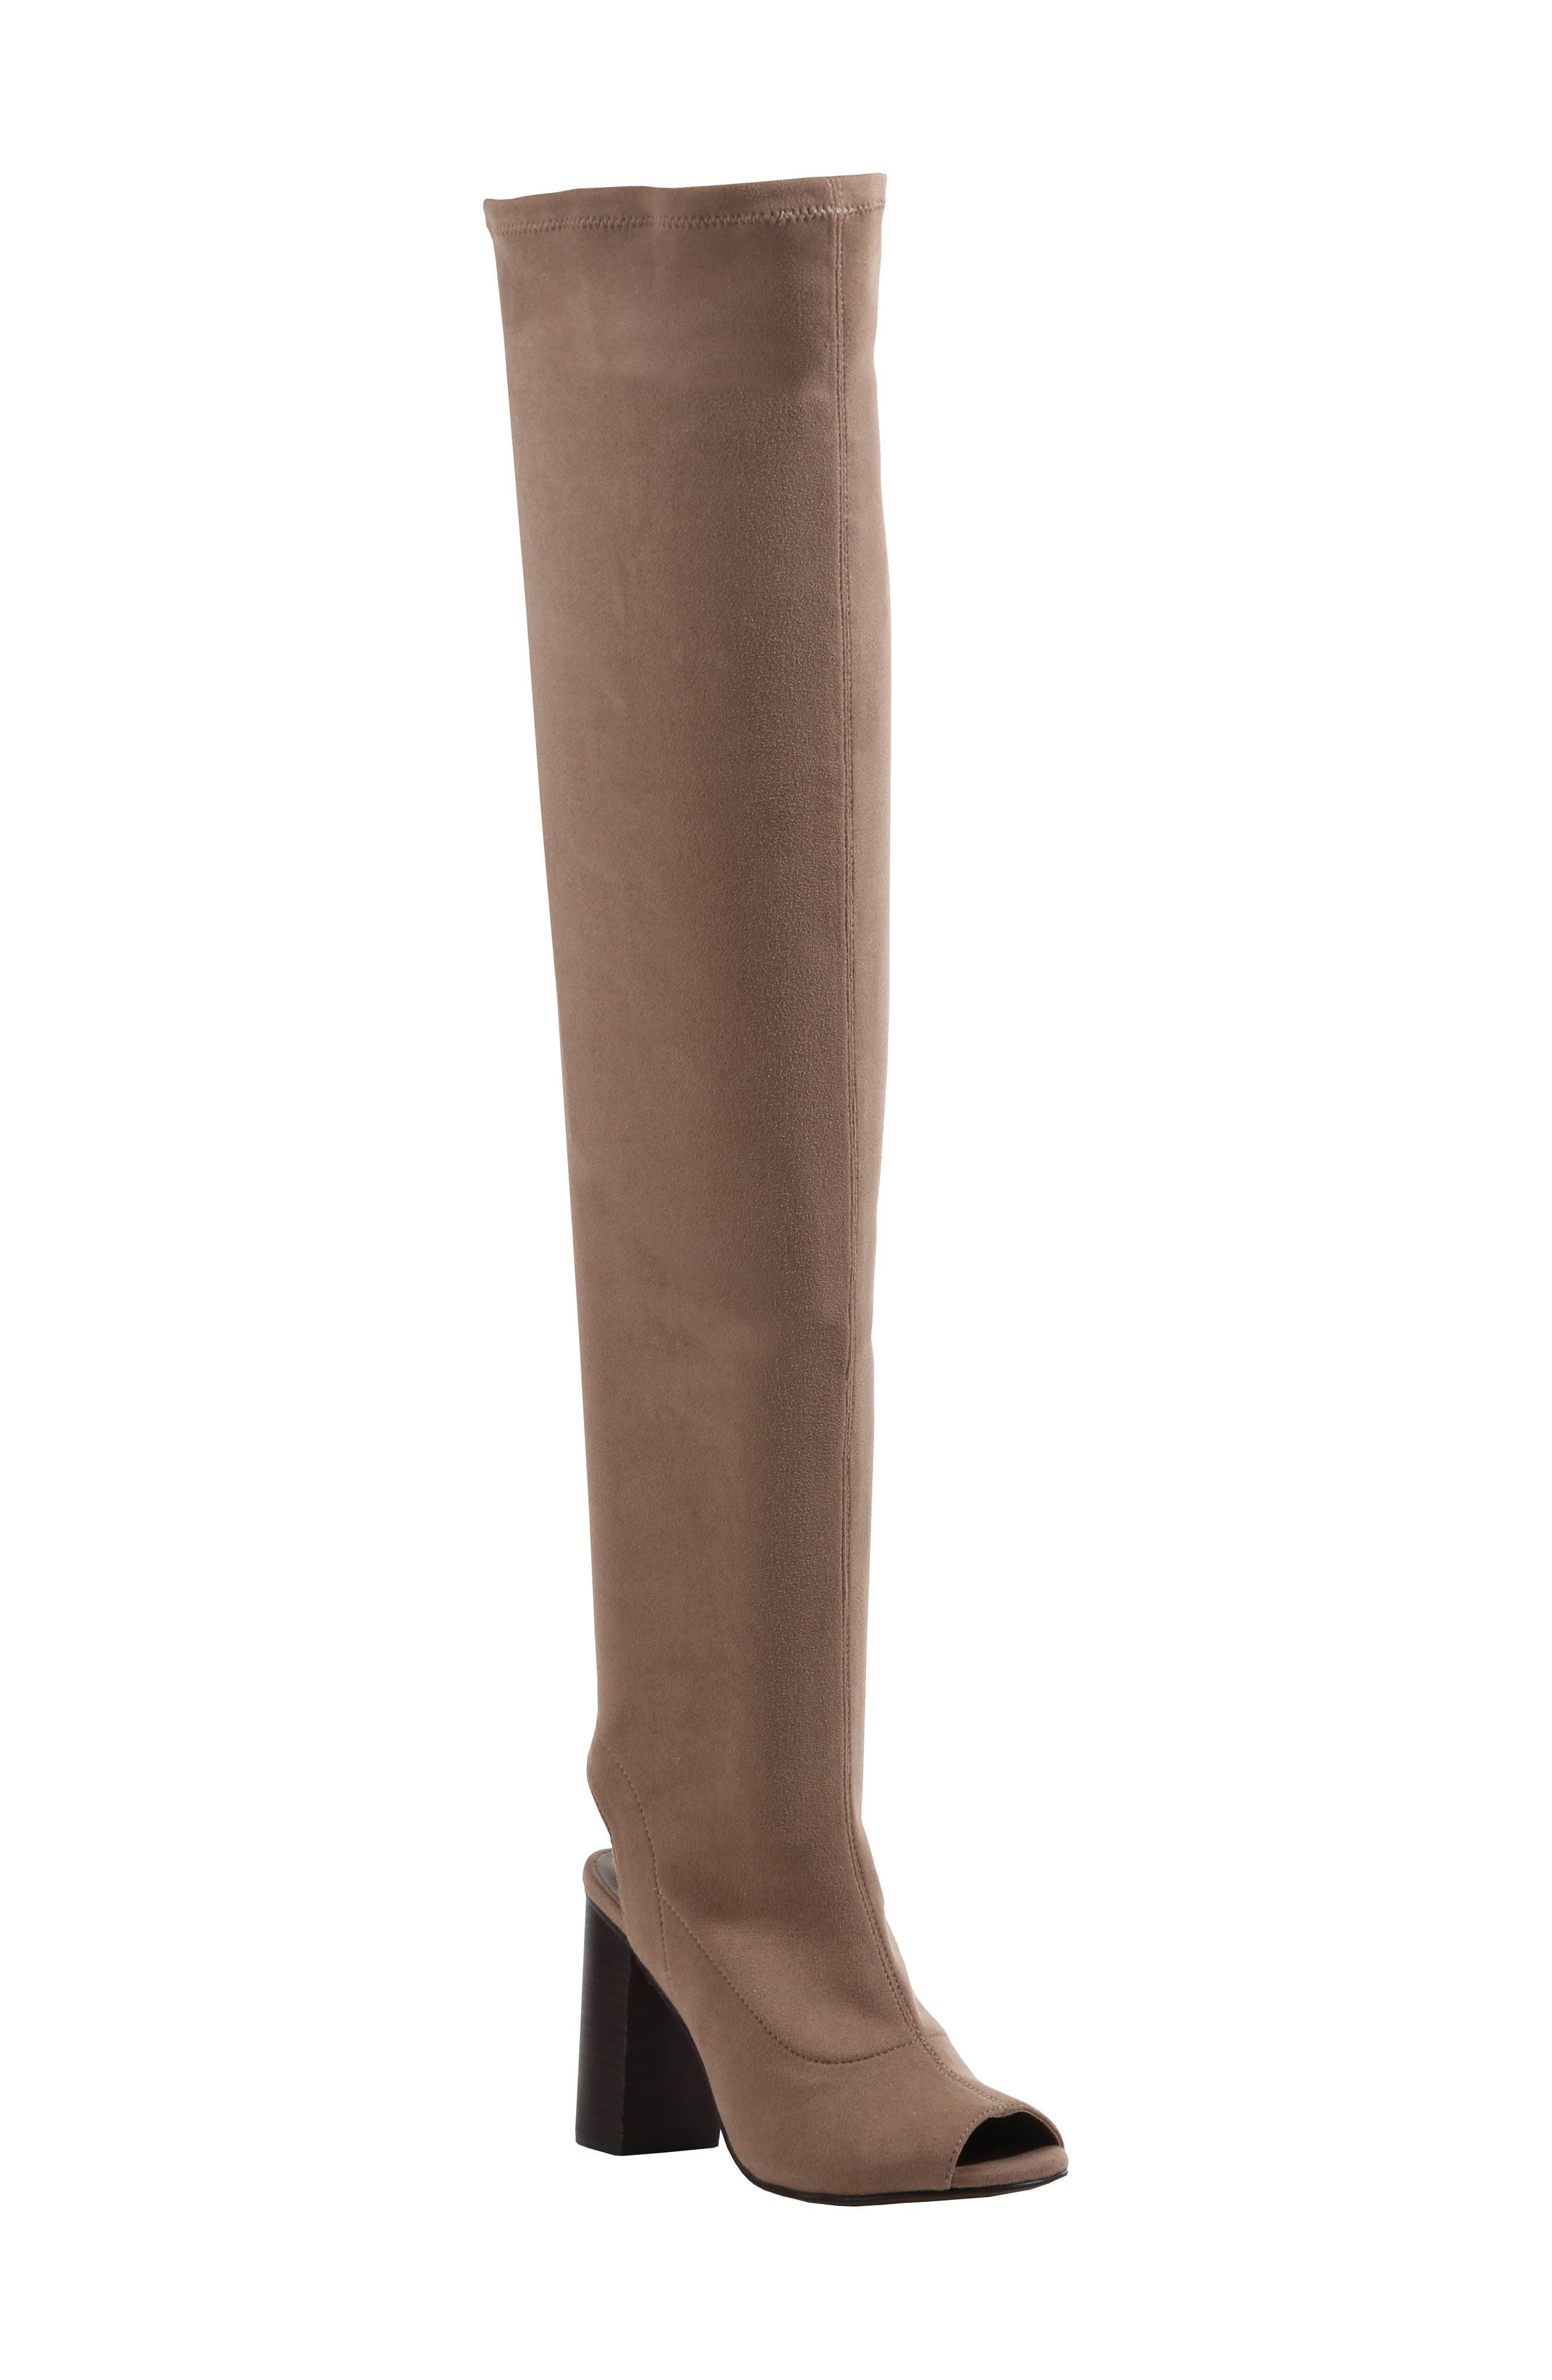 Mia Robyn Cutout Over the Knee Boot (Women)